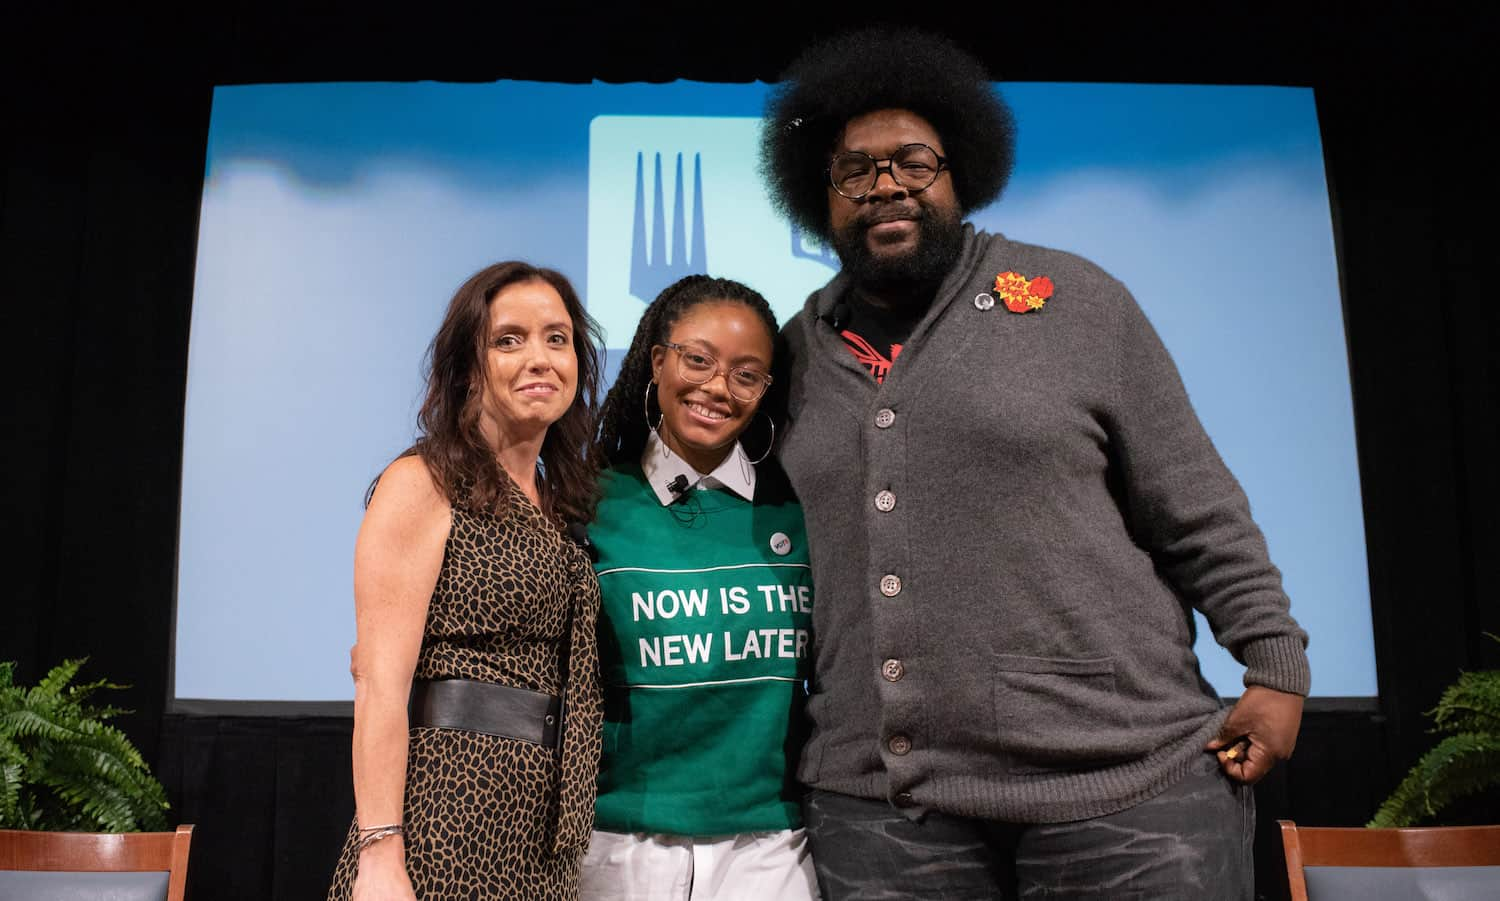 On Food Talk, Questlove and Haile Thomas talk about bringing nutrition to the communities they love—and how fighting racism is part of the struggle.